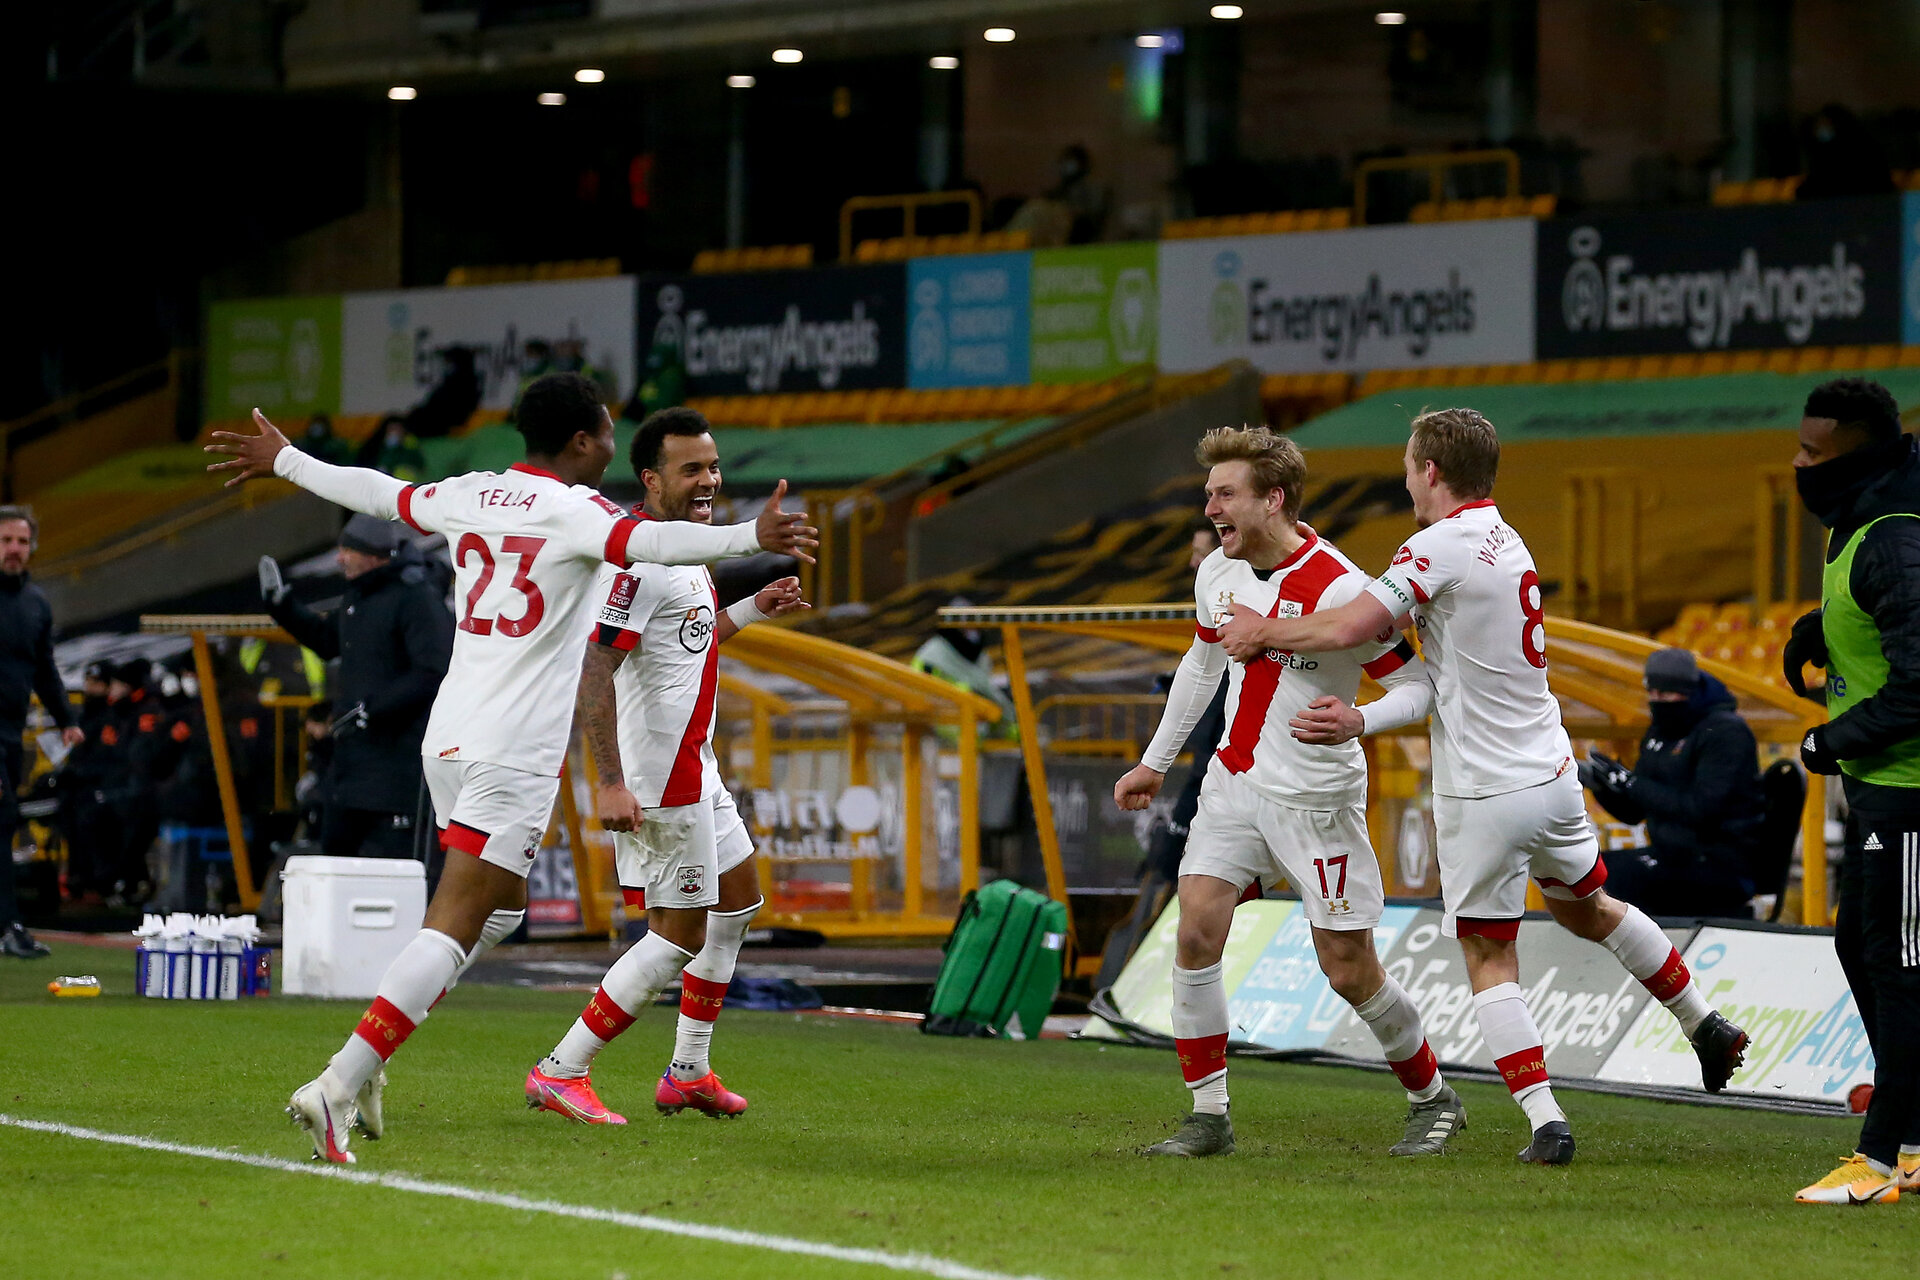 WOLVERHAMPTON, ENGLAND - FEBRUARY 11: Stuart Armstrong of Southampton scores and celebrates with team mates during The Emirates FA Cup Fifth Round match between Wolverhampton Wanderers and Southampton at Molineux on February 11, 2021 in Wolverhampton, England. Sporting stadiums around the UK remain under strict restrictions due to the Coronavirus Pandemic as Government social distancing laws prohibit fans inside venues resulting in games being played behind closed doors. (Photo by Matt Watson/Southampton FC via Getty Images)